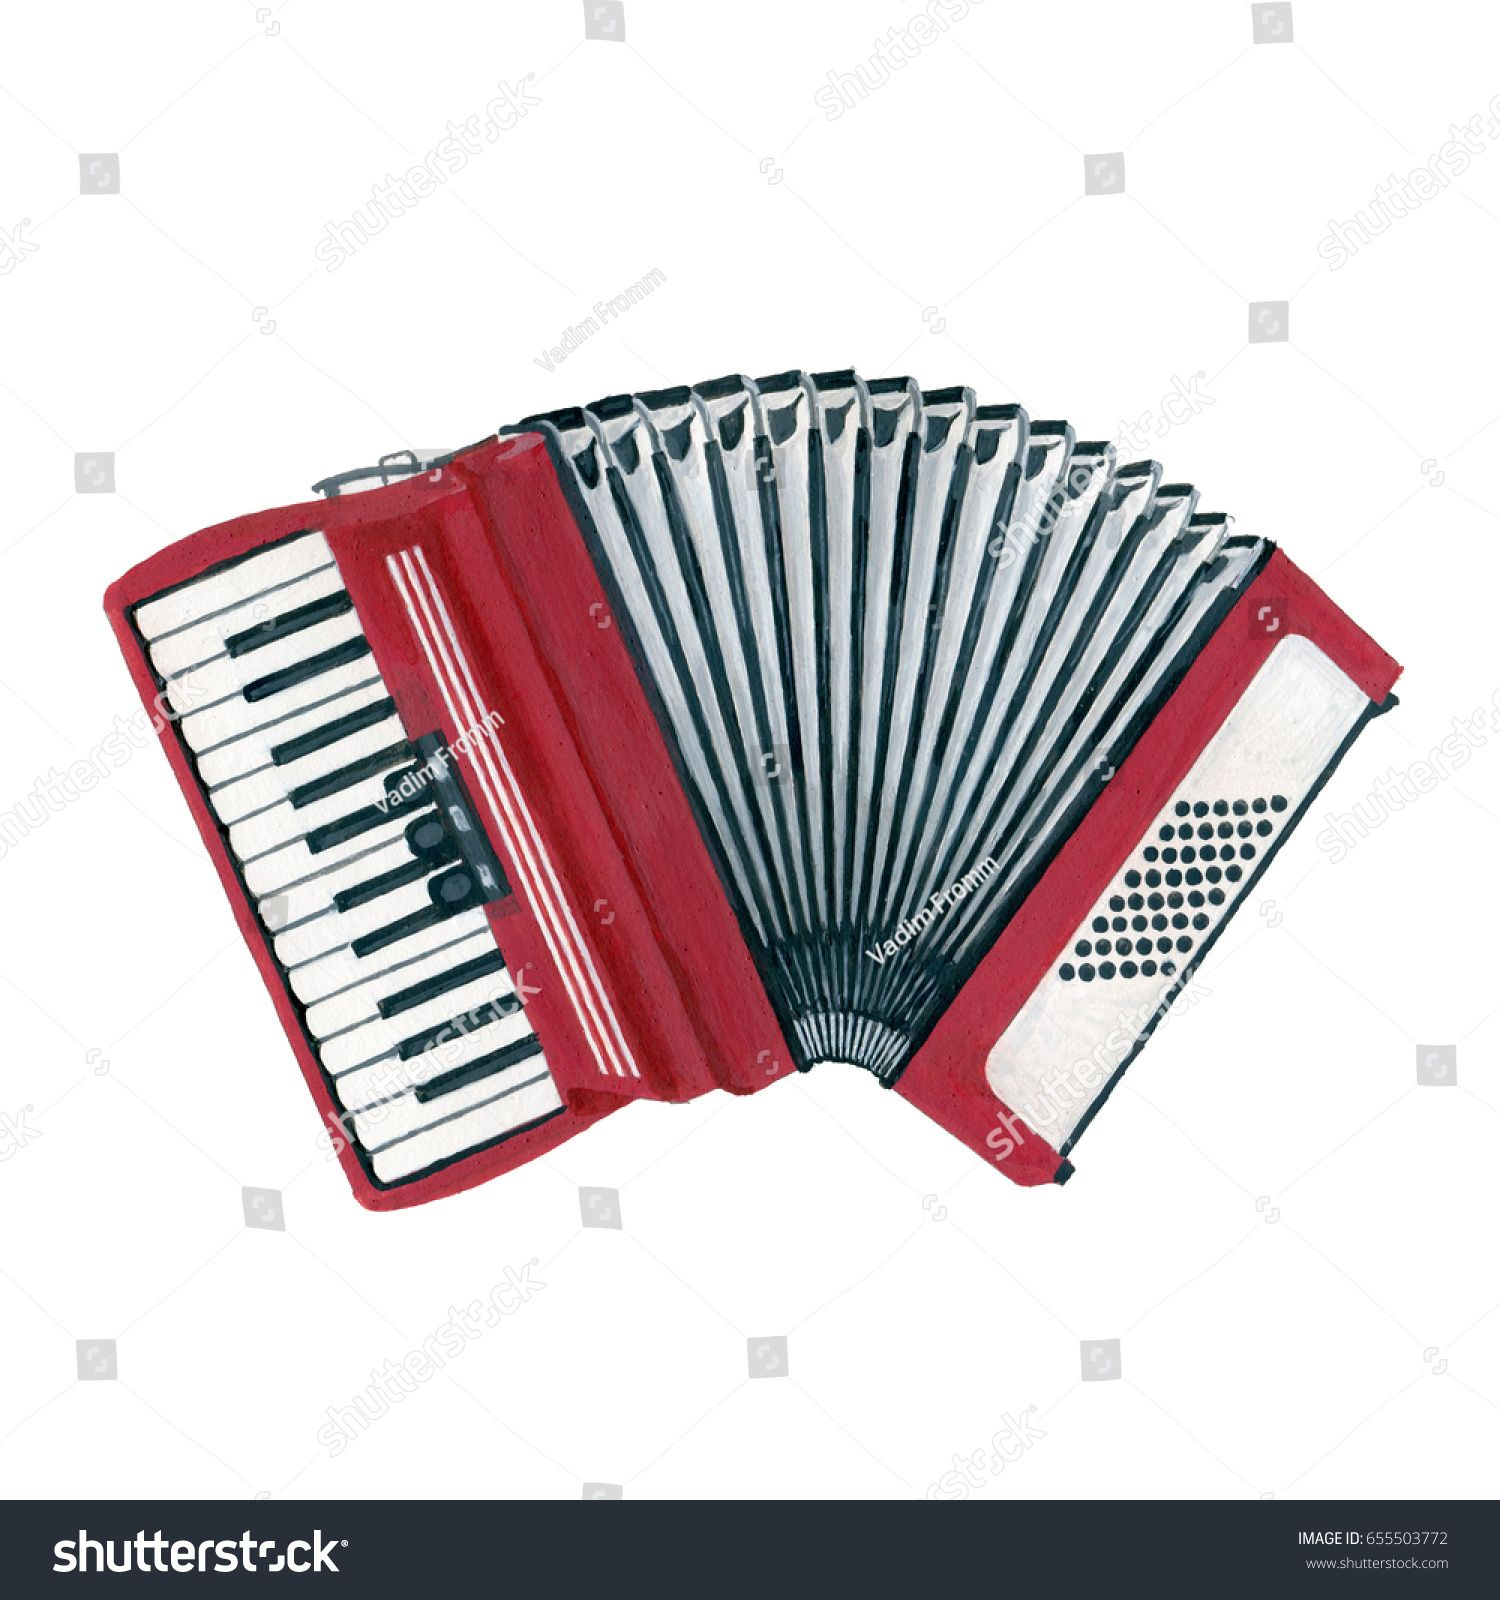 A realistic drawn accordion, hand painted with gouache